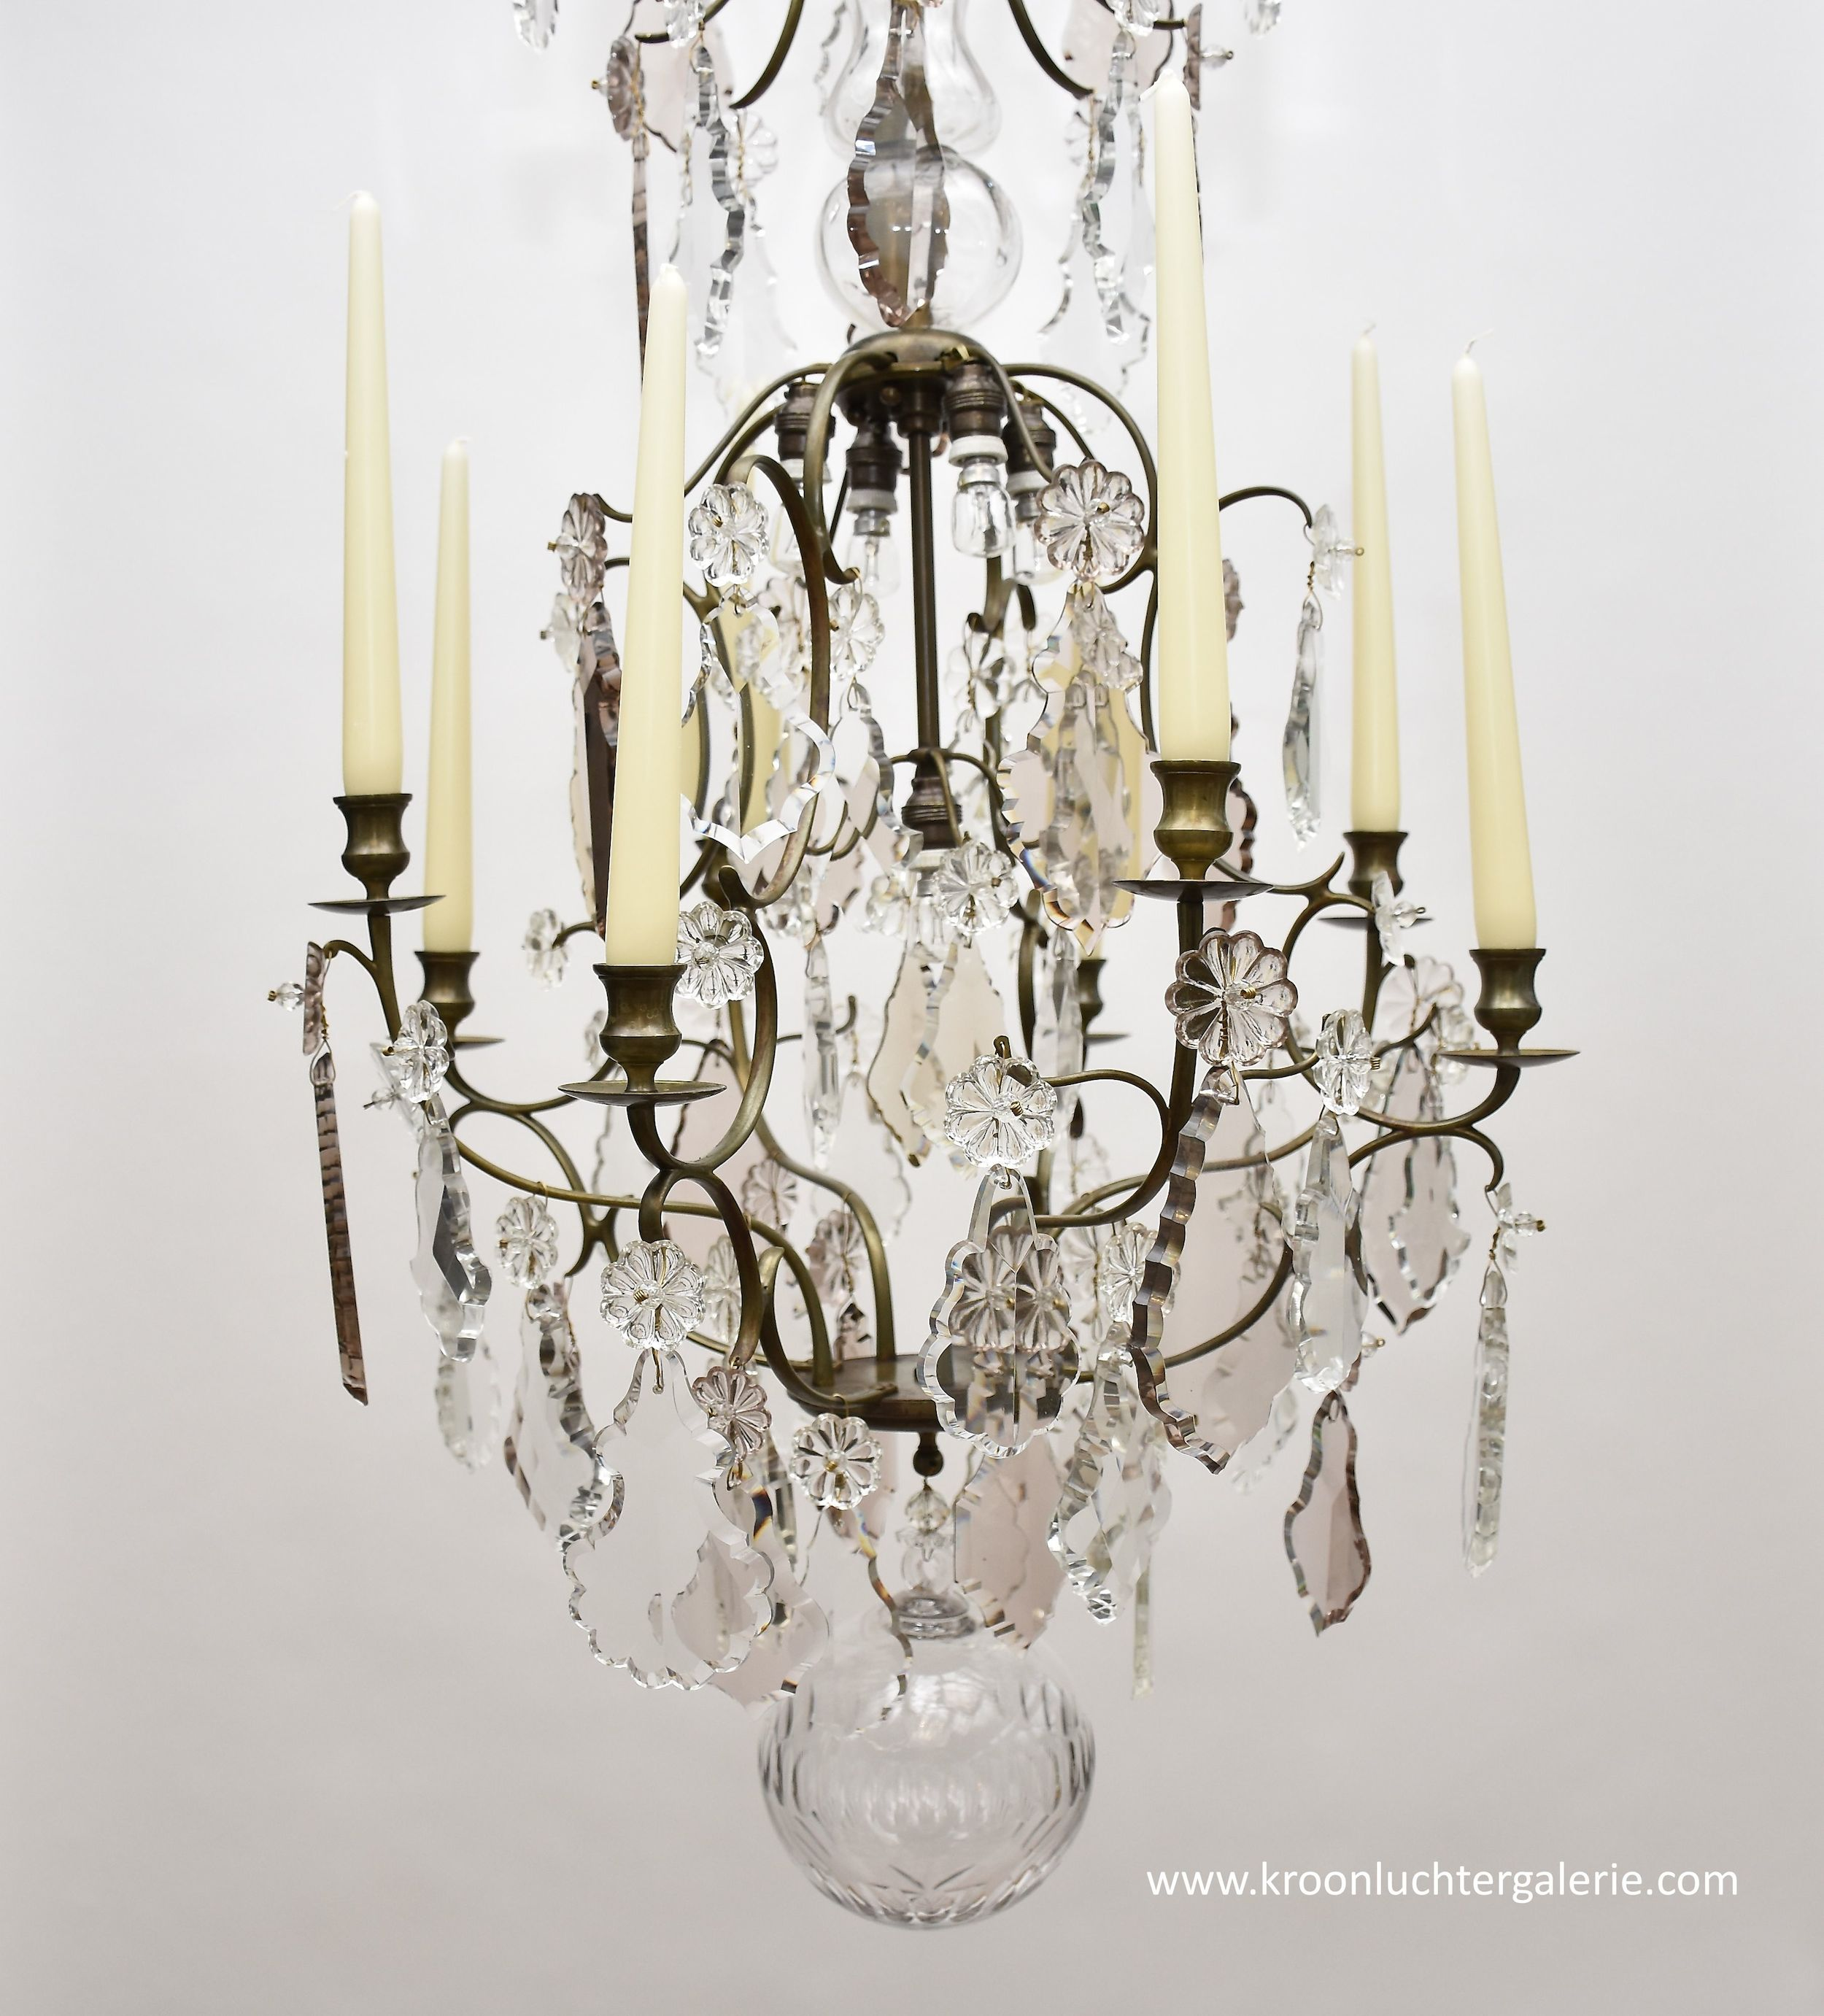 A pair of North-European Rococo chandeliers